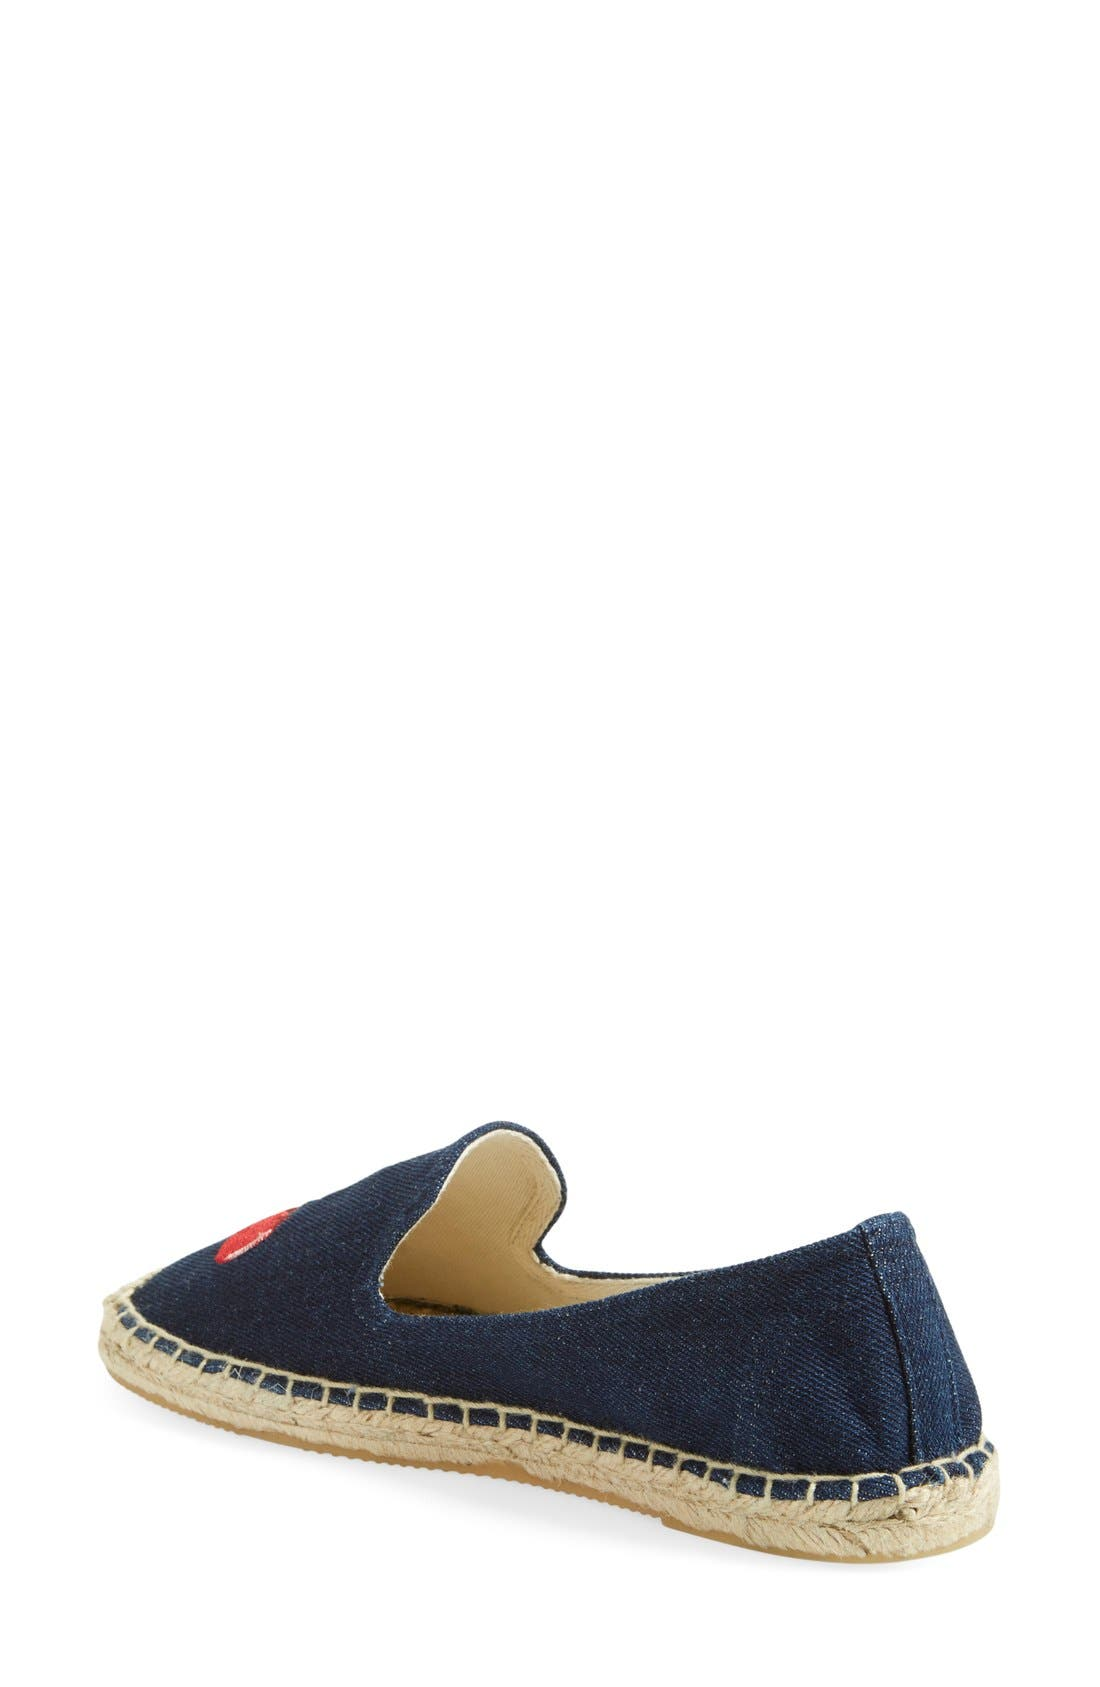 Alternate Image 3  - Soludos 'Cherries' Embroidered Espadrille Slip-On (Women)